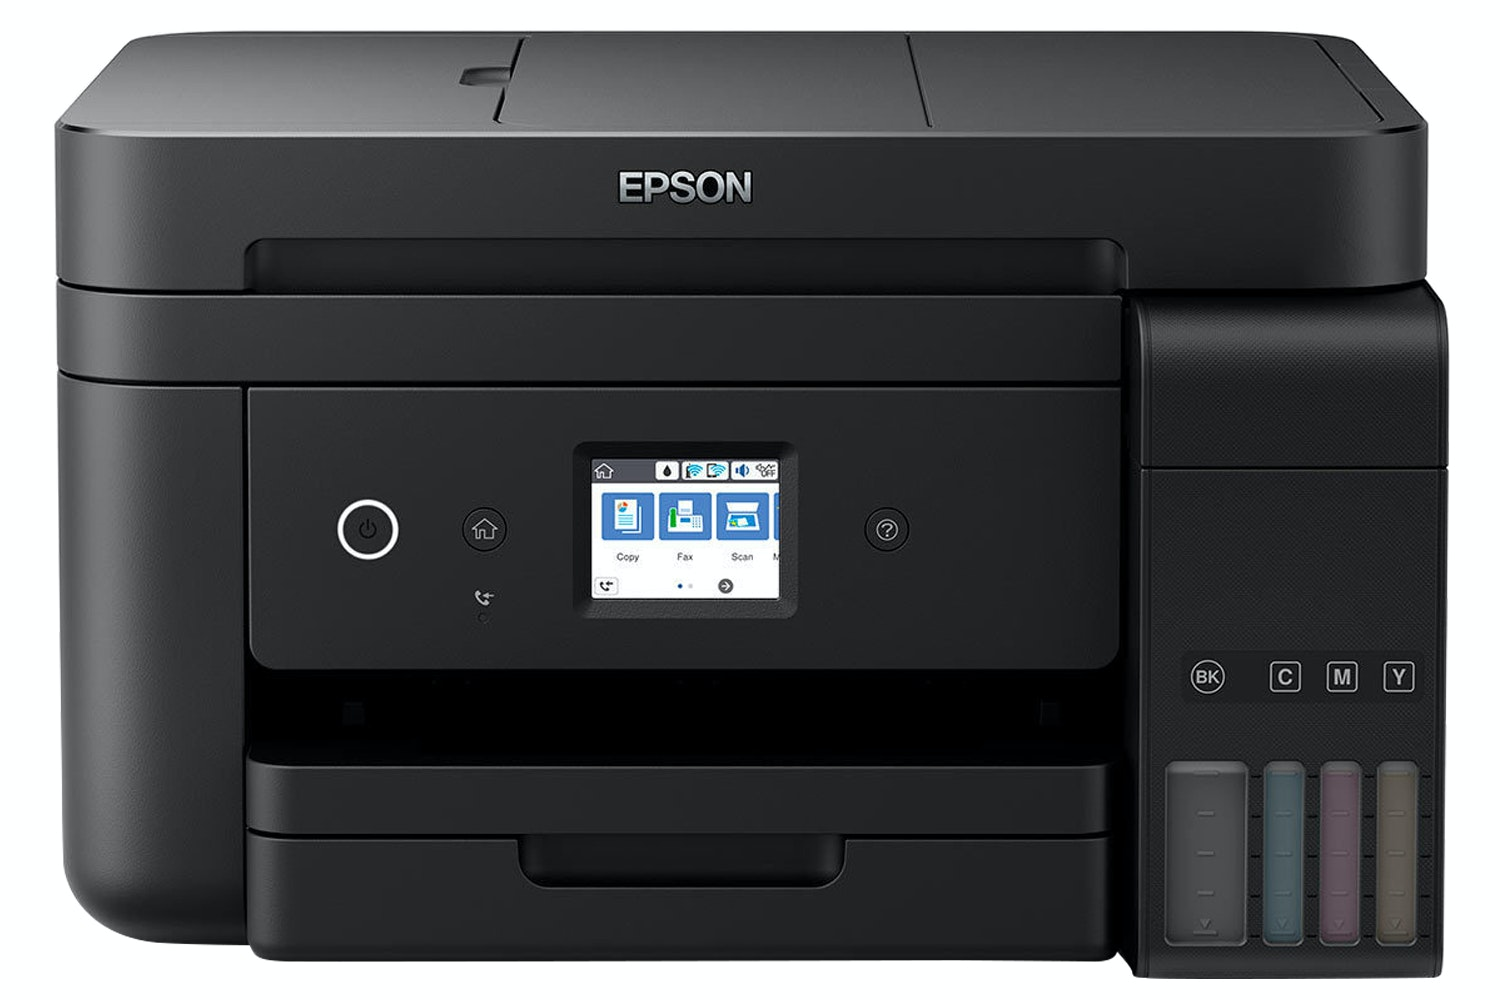 Epson EcoTank ET-4750 A4 Multifunction Inkjet Printer